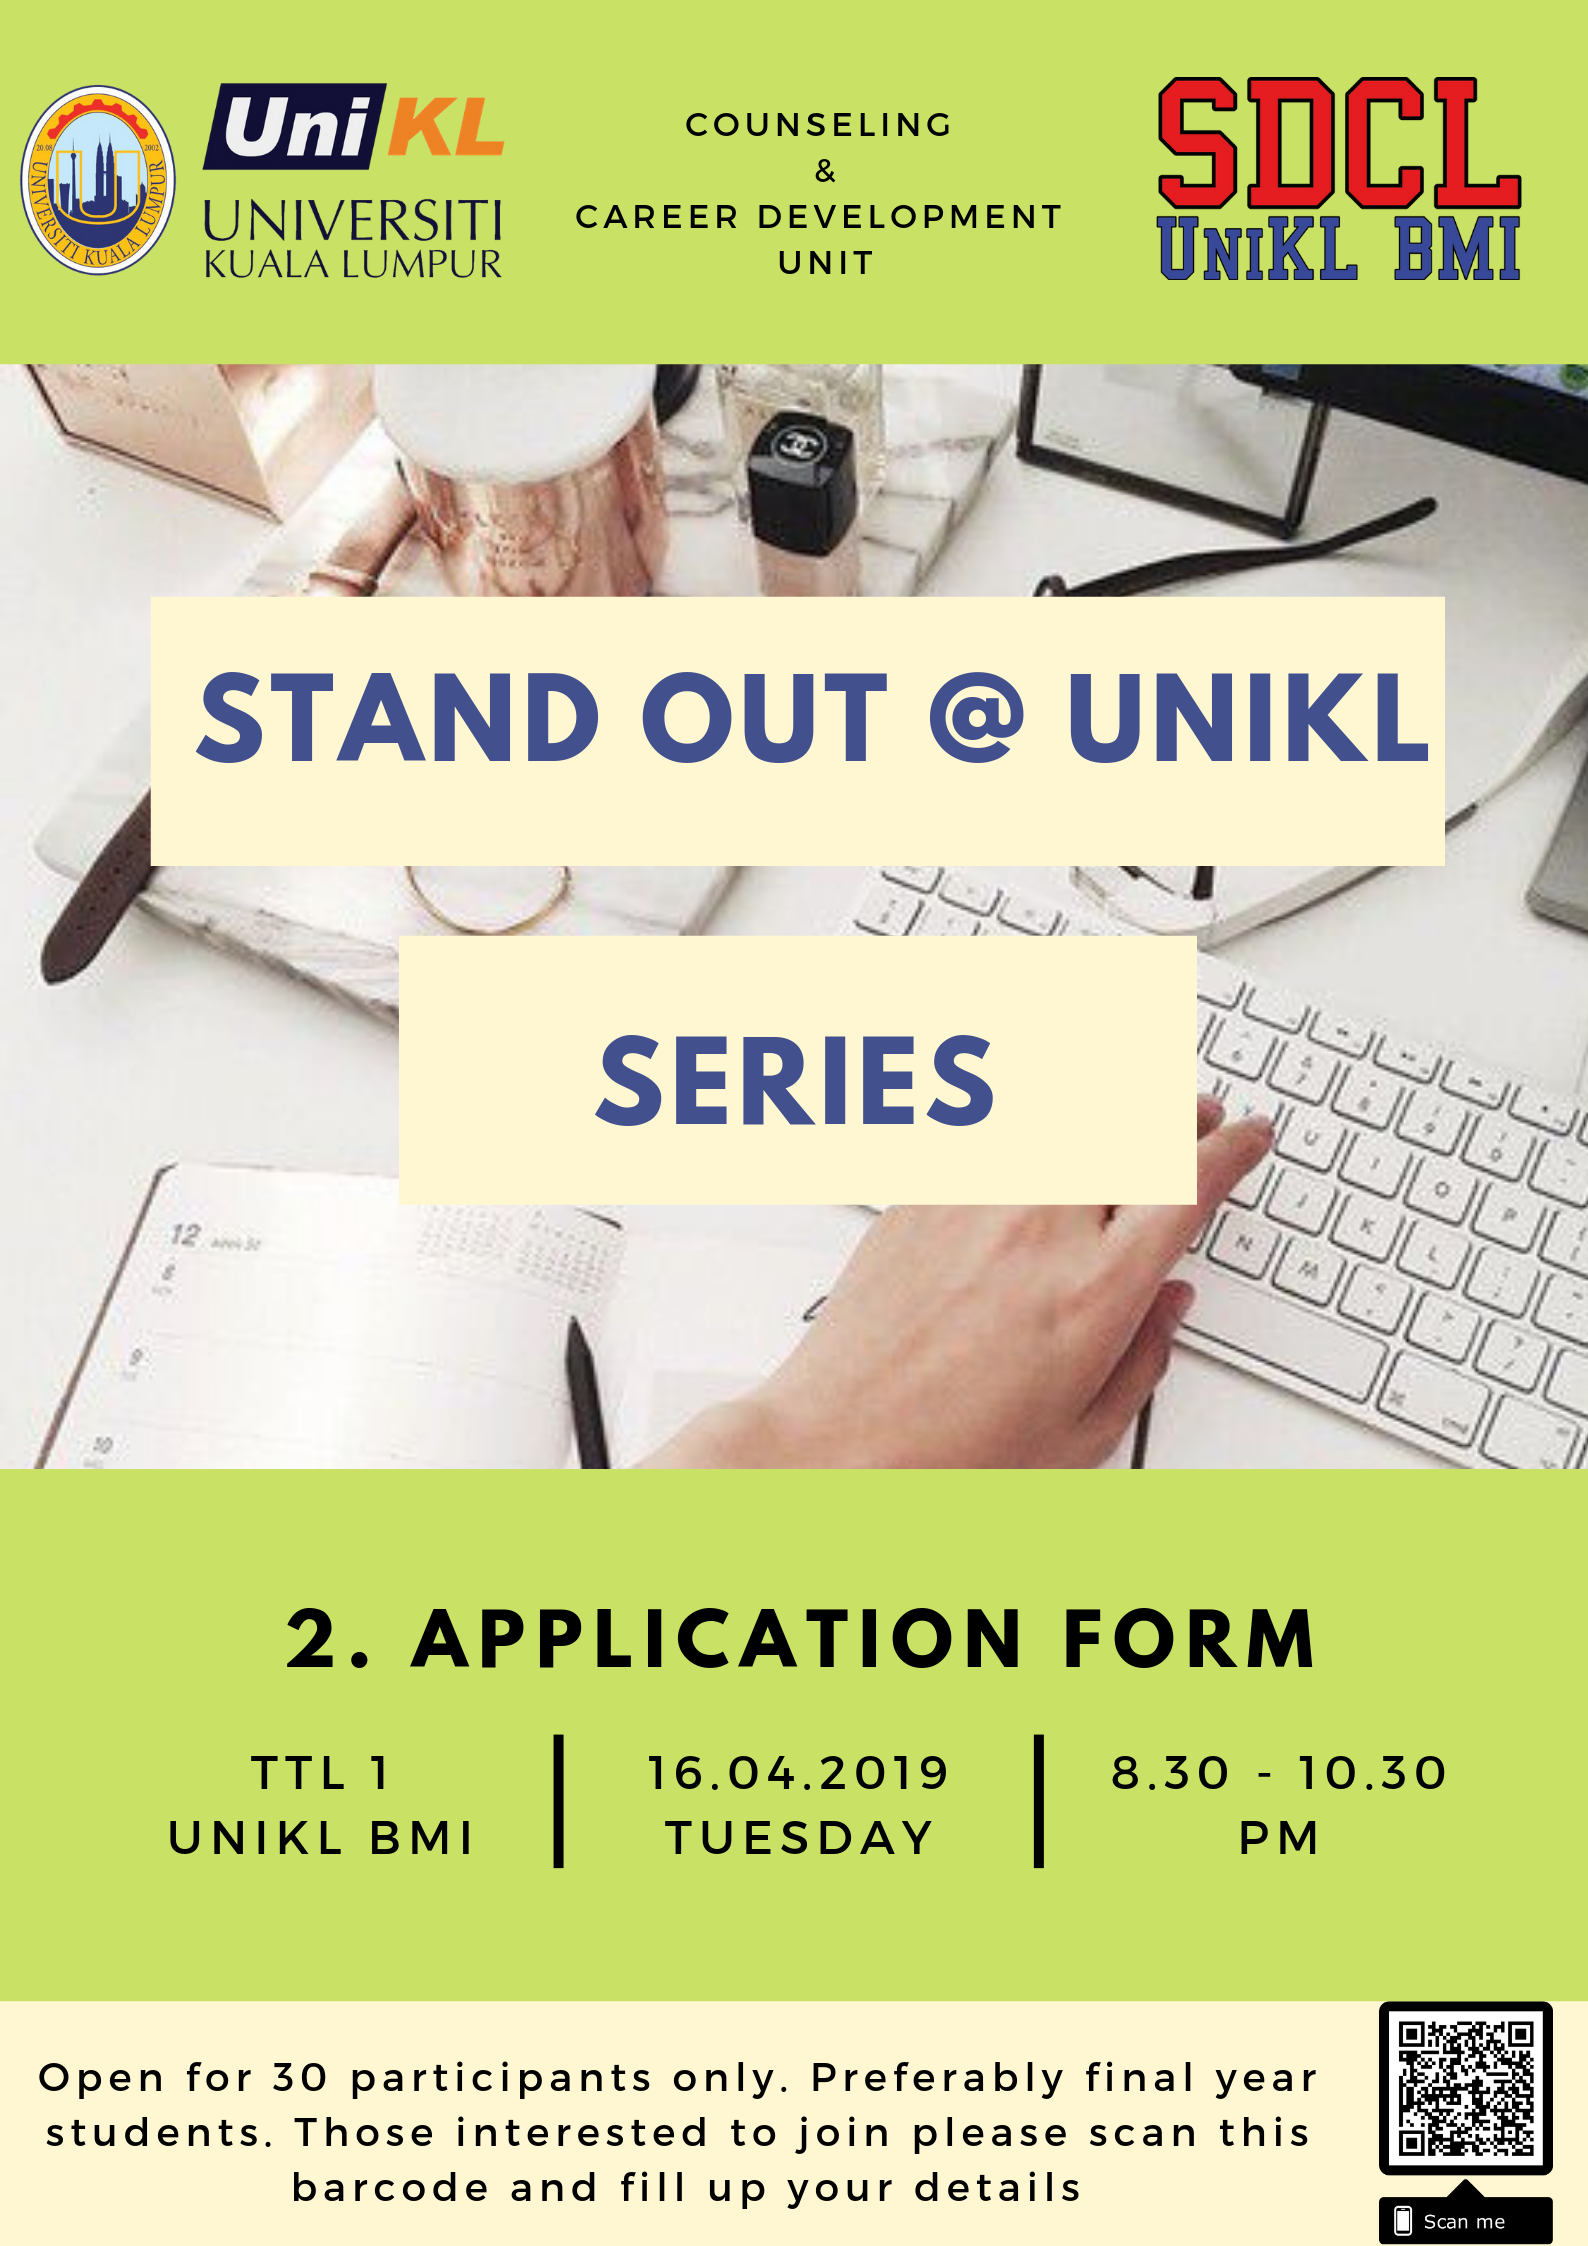 STAND OUT @ UNIKL SERIES: 2. APPLICATION FORM